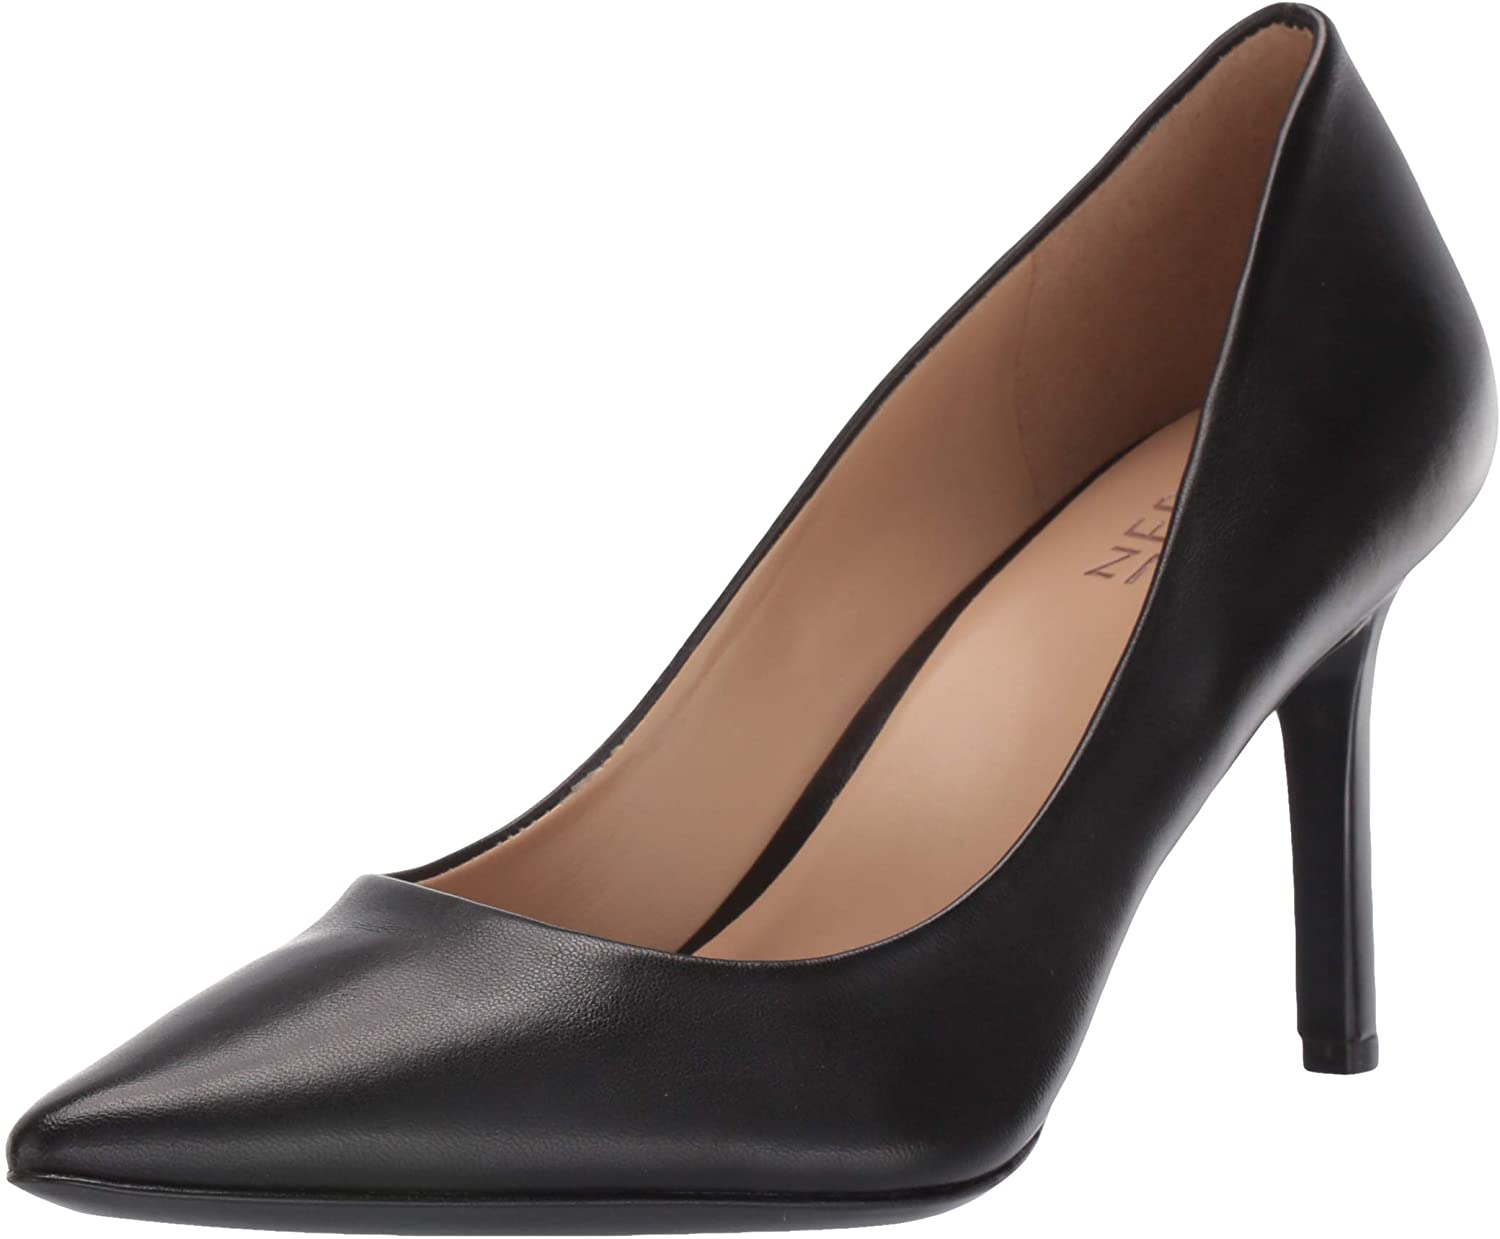 Naturalizer Women's New Shipping Free Anna Many popular brands Pump